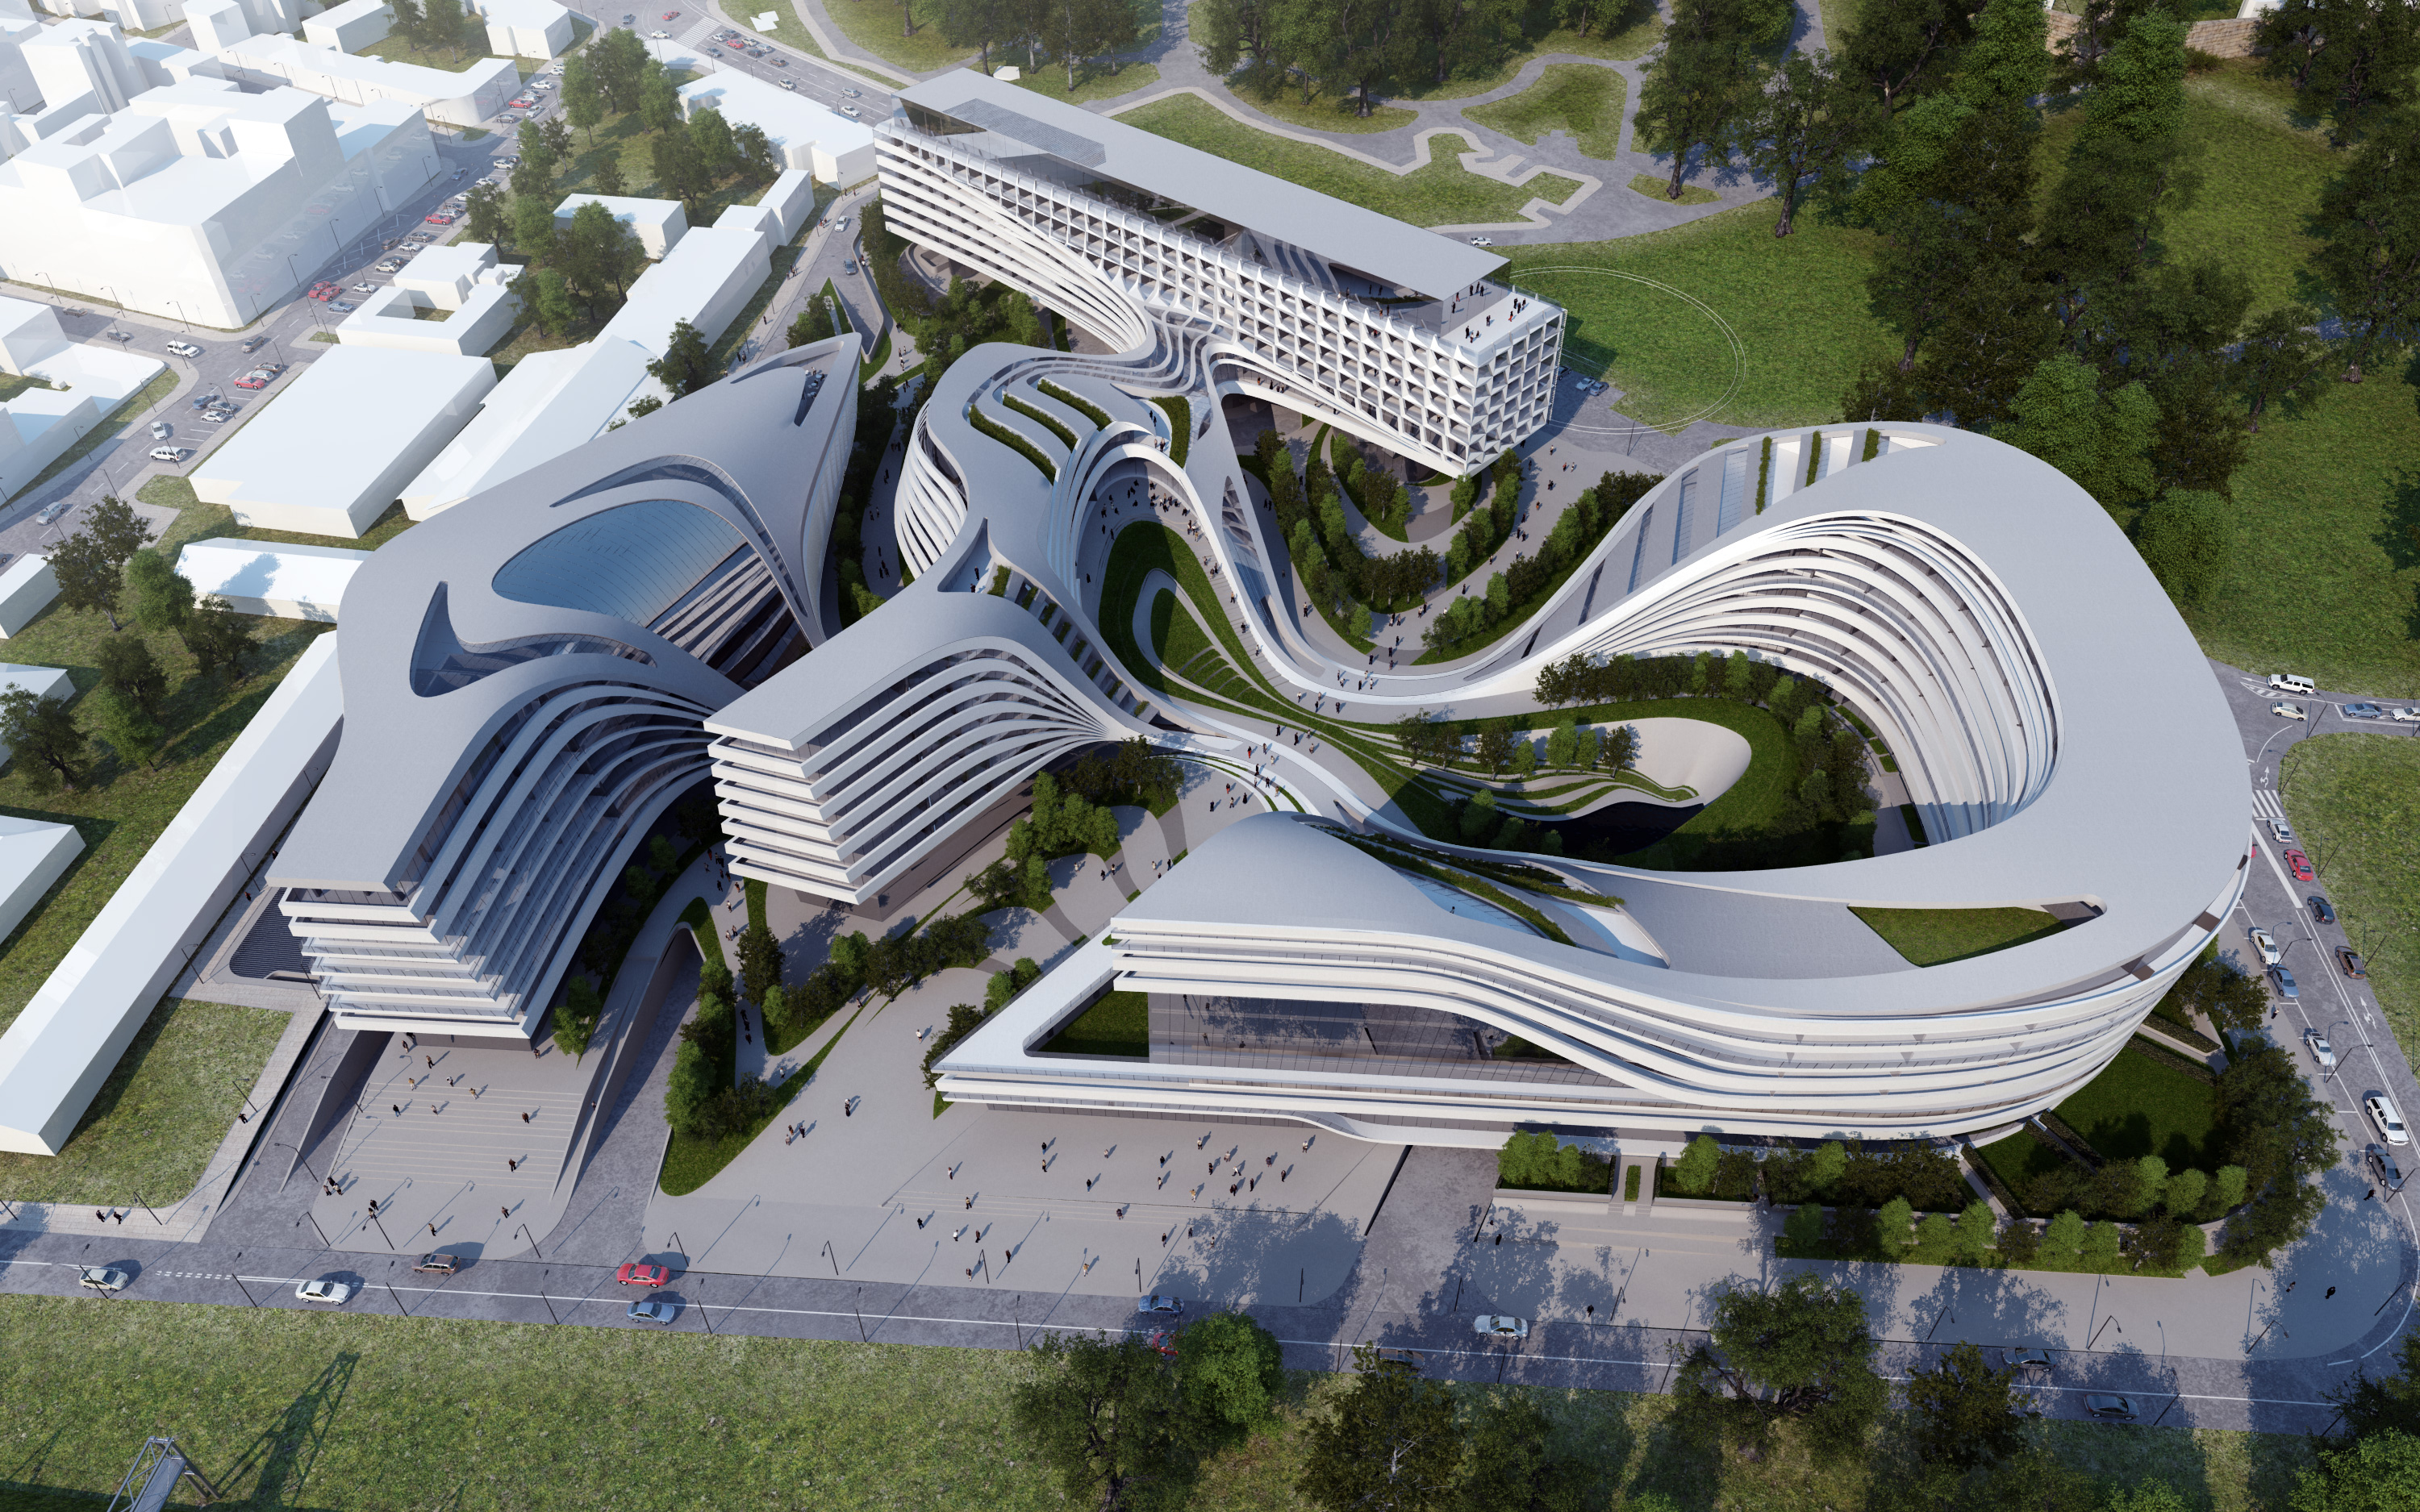 Beko masterplan belgrade zaha hadid architects the for Modern architecture concept